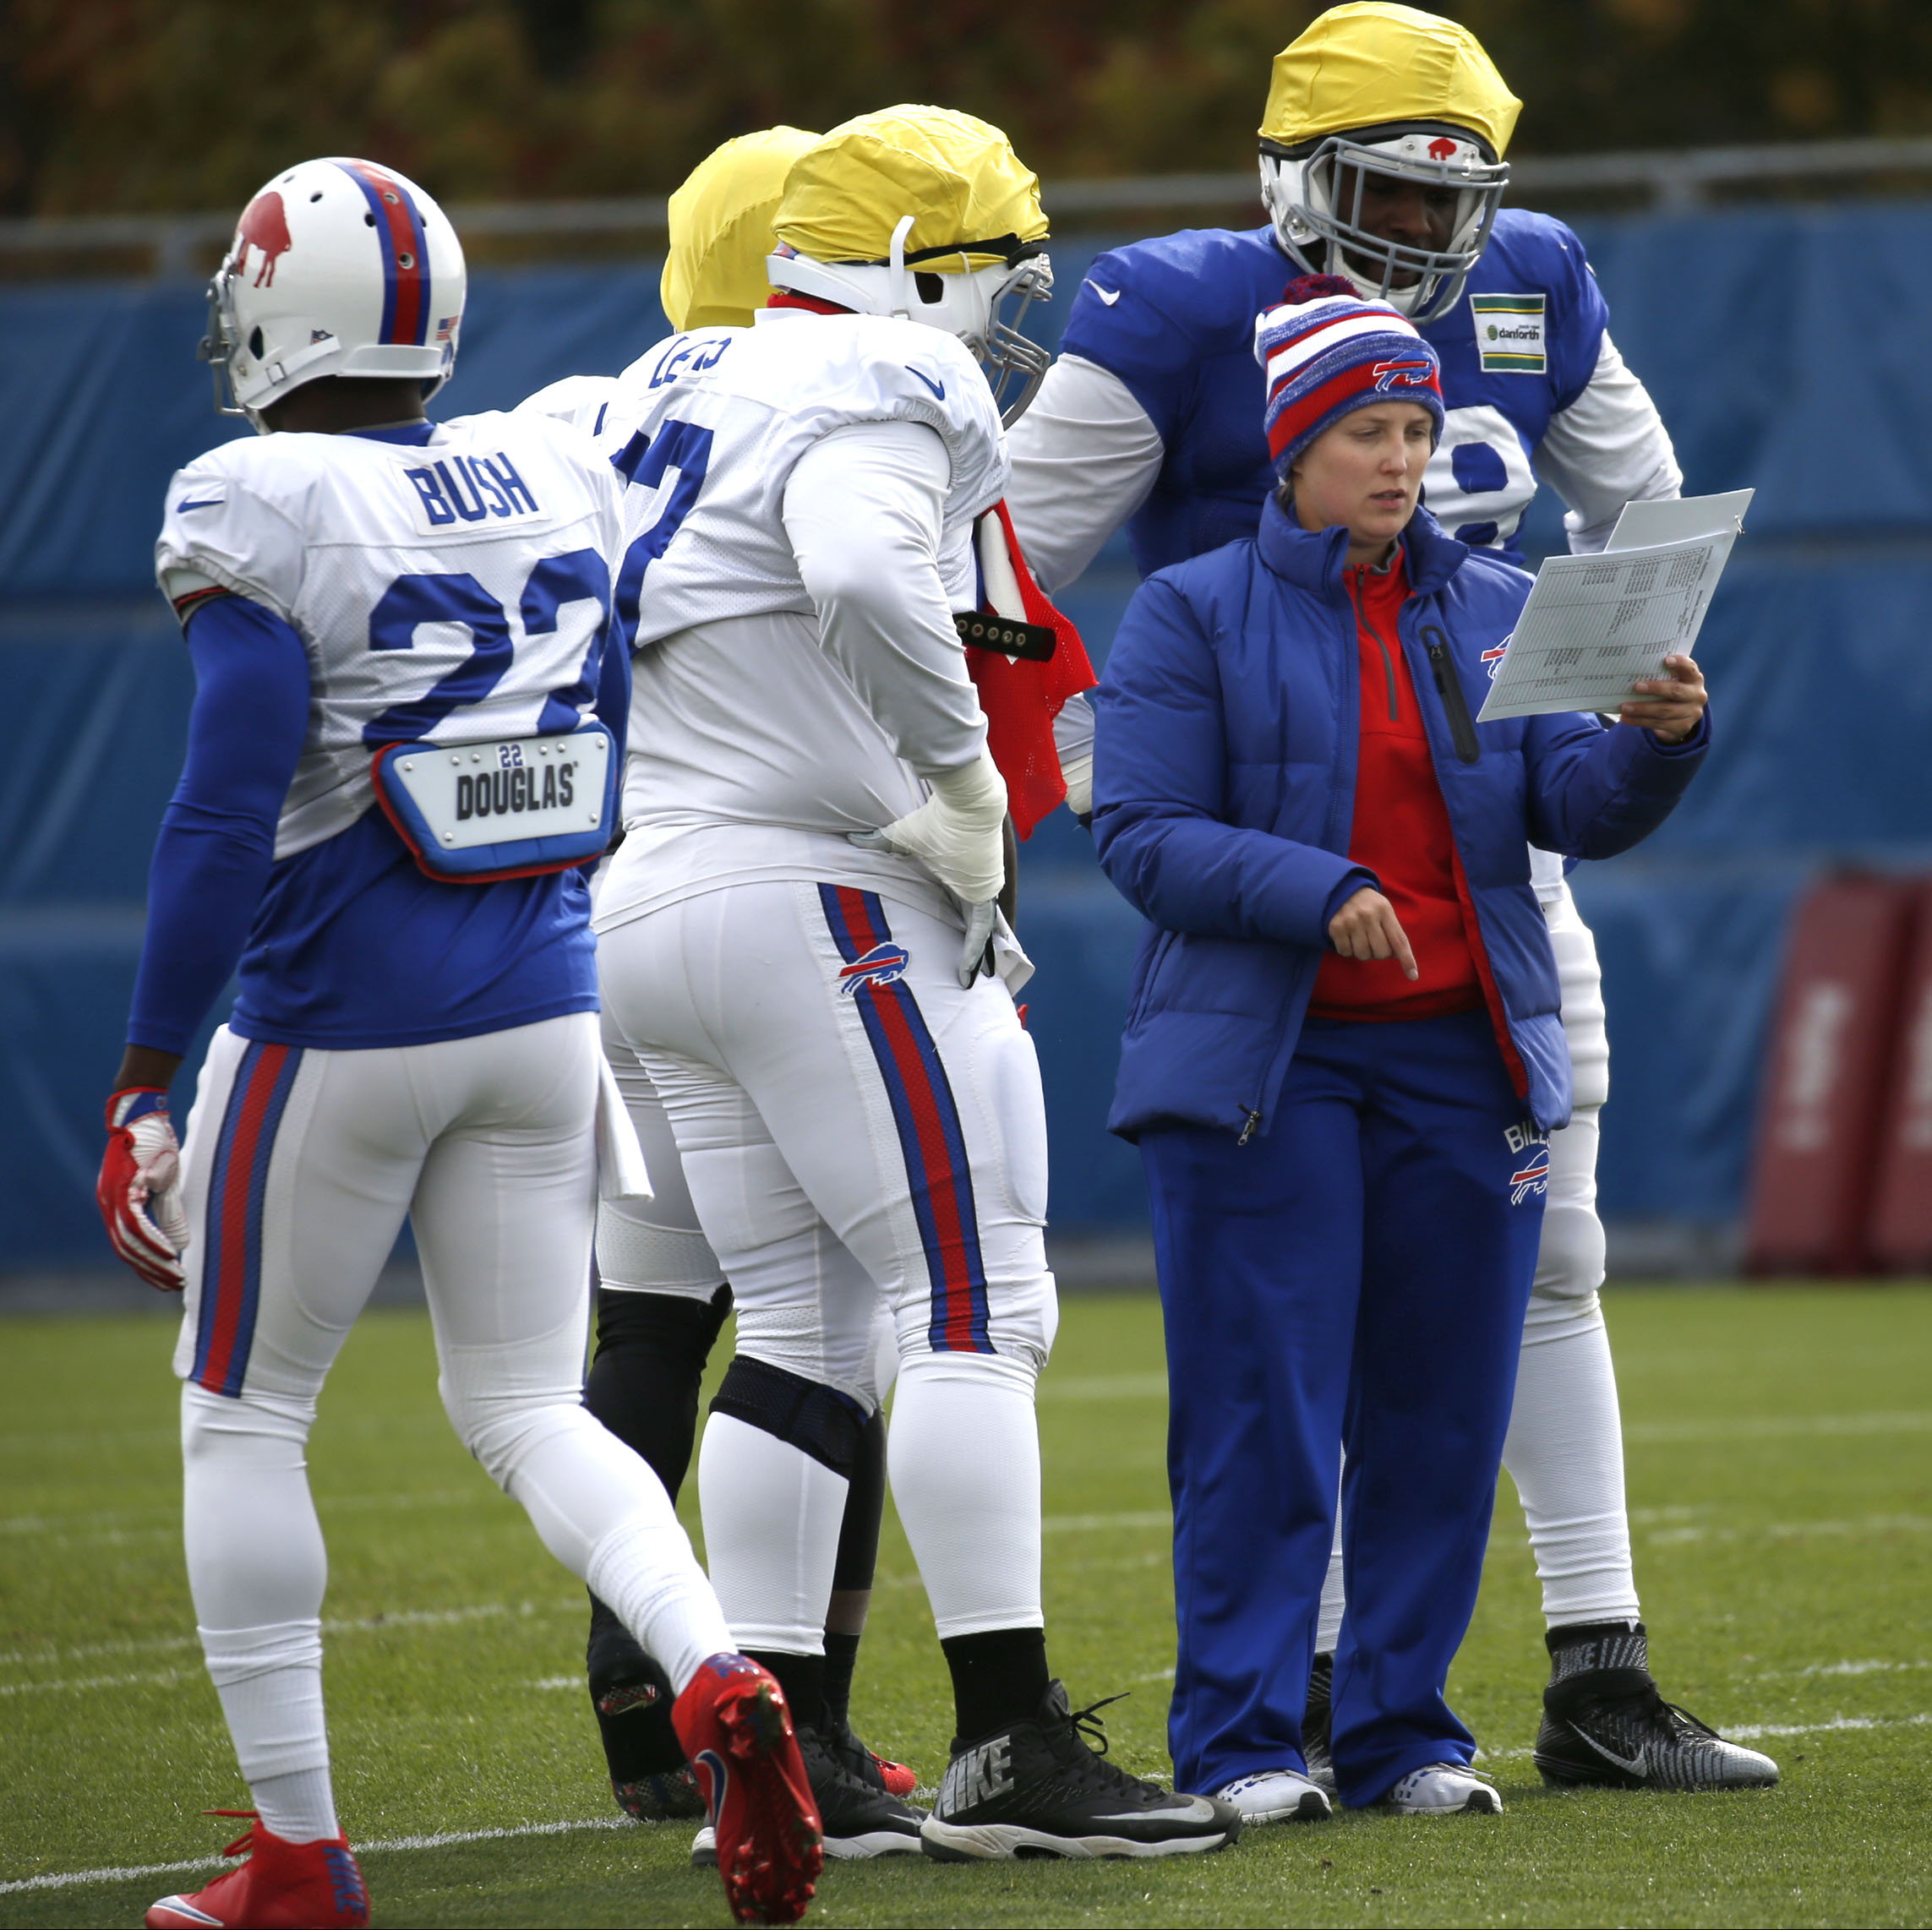 Kathryn Smith, the NFL's first female full-time assistant, is praised by the Bills players for her knowledge and work ethic. (Robert Kirkham/Buffalo News)